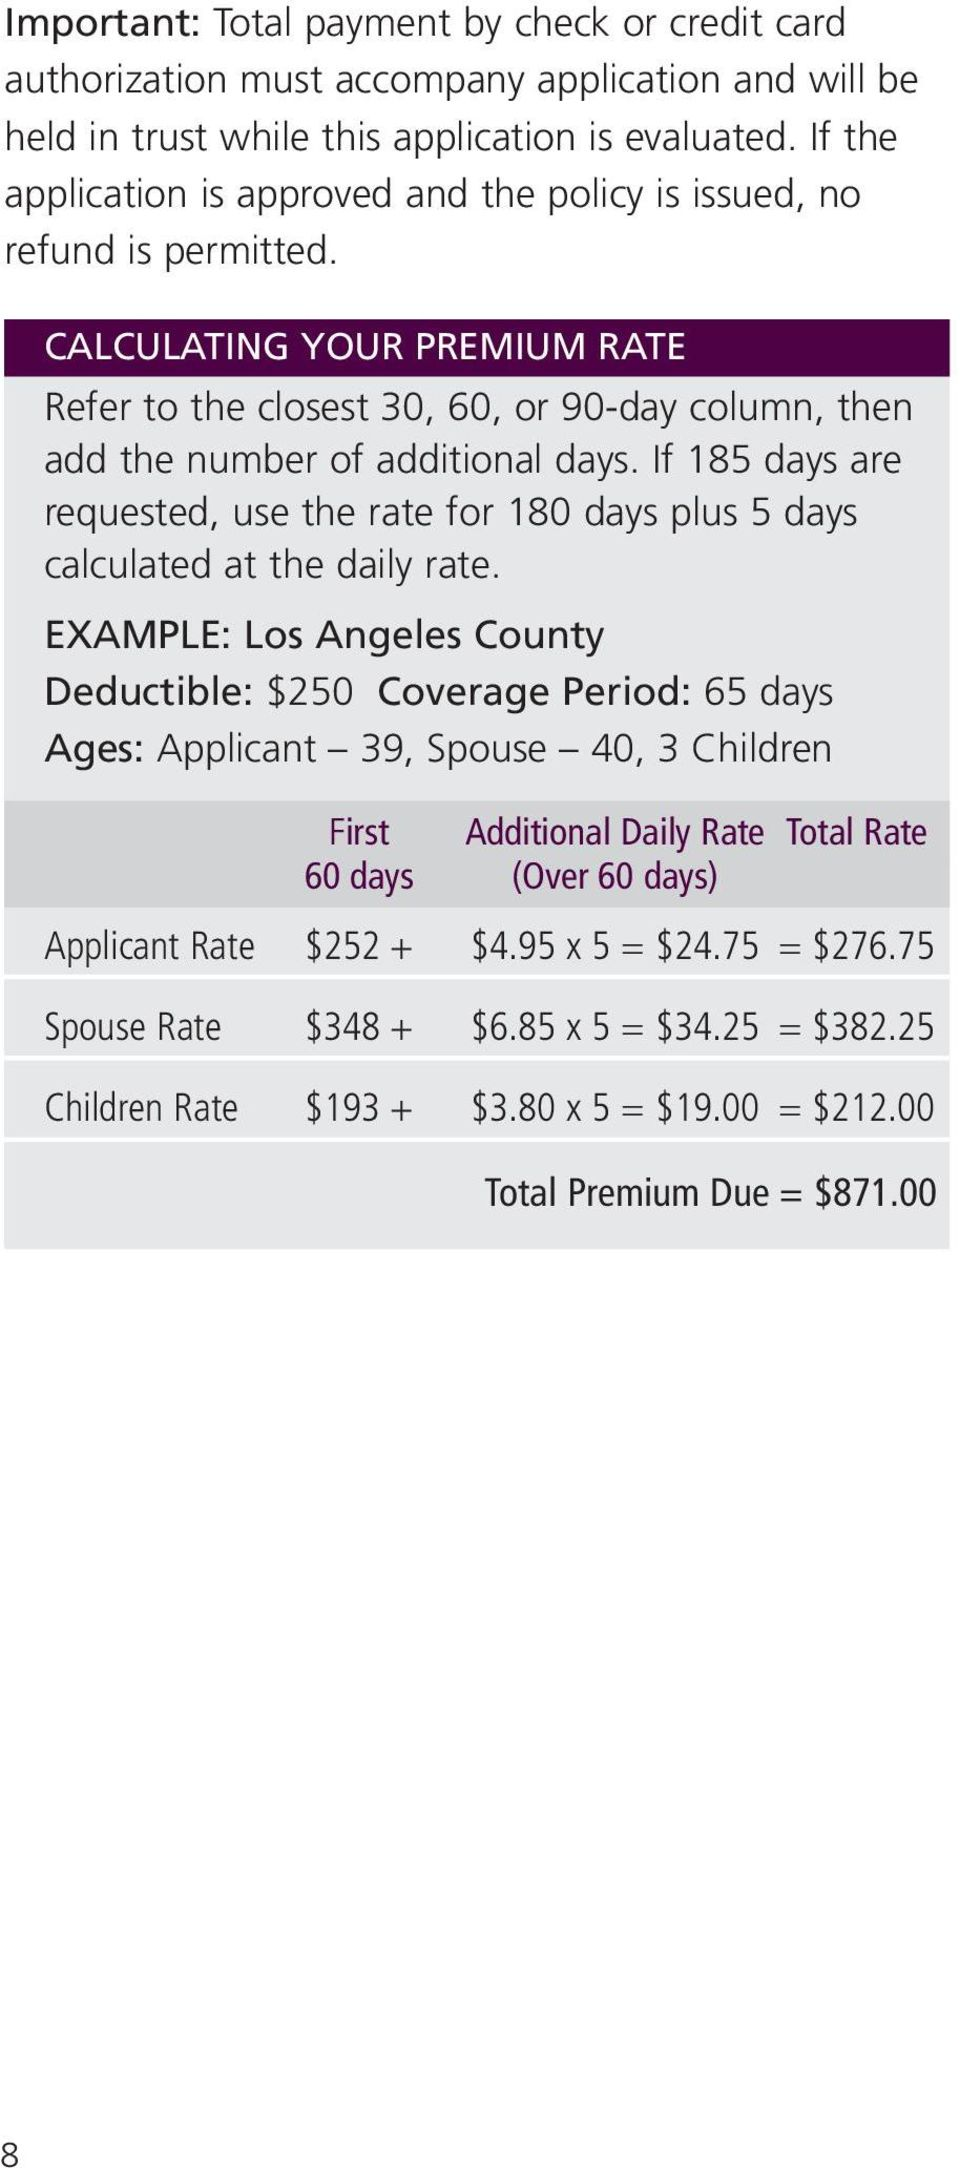 If 185 days are requested, use the rate for 180 days plus 5 days calculated at the daily rate.